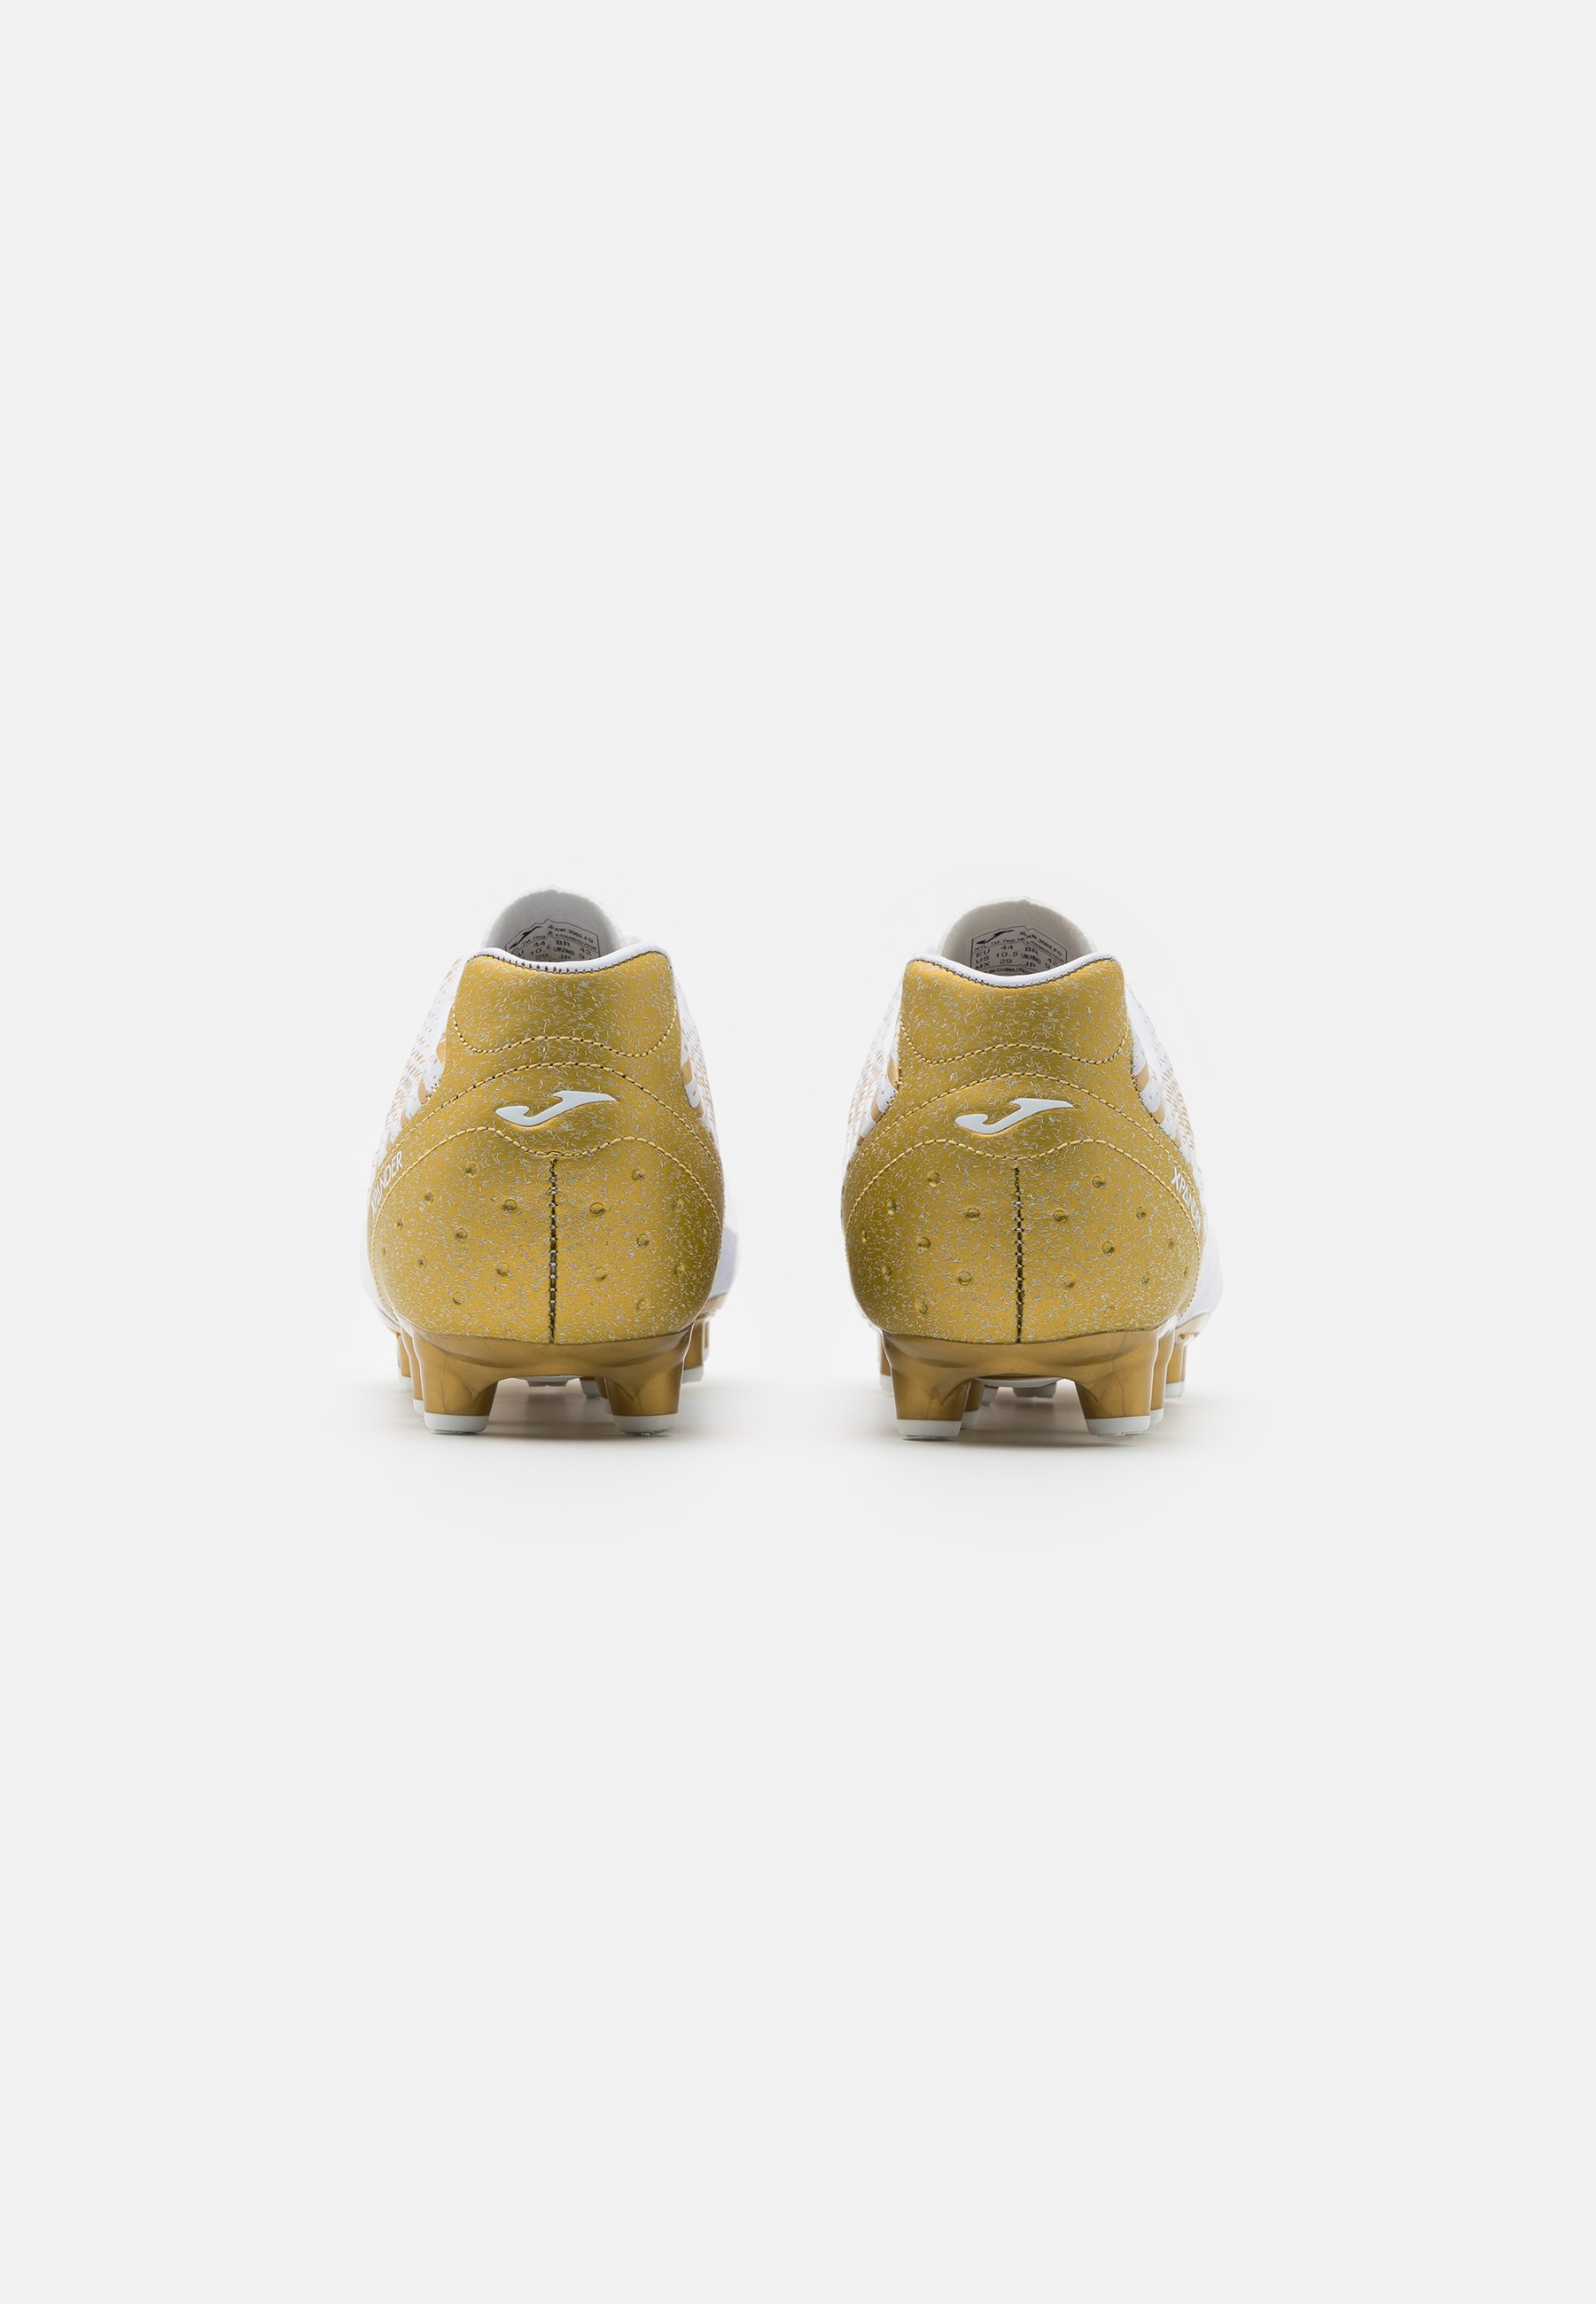 High Quality Cheapest Joma XPANDER - Moulded stud football boots - white/gold | men's shoes 2020 JGkjW